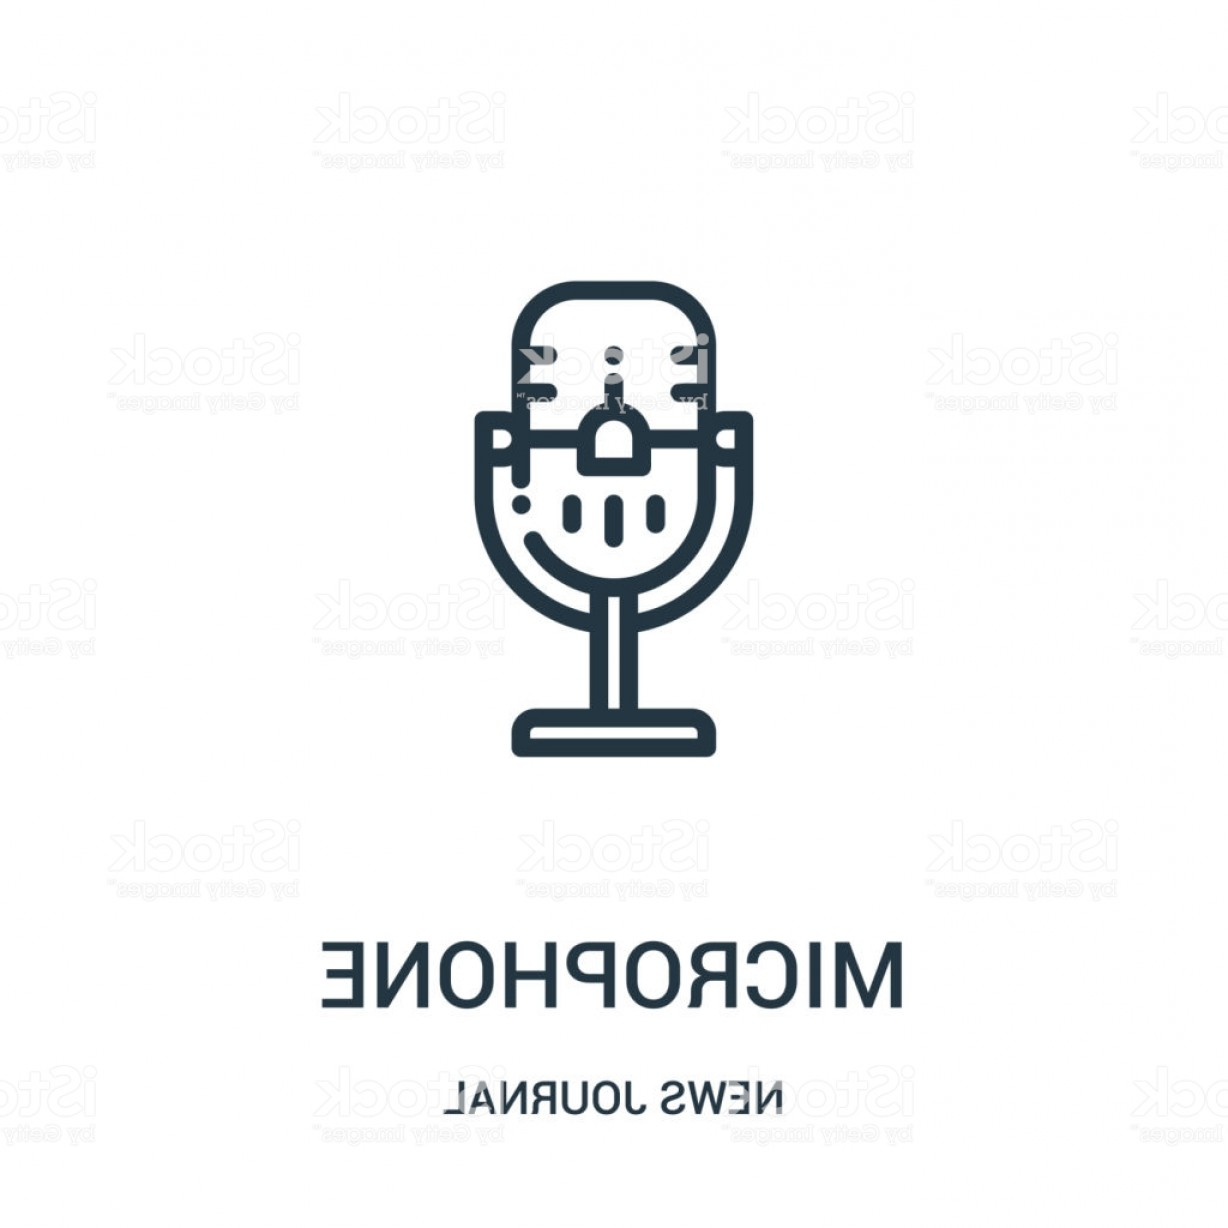 News Microphone Icon Vector: Microphone Icon Vector From News Journal Collection Thin Line Microphone Outline Gm